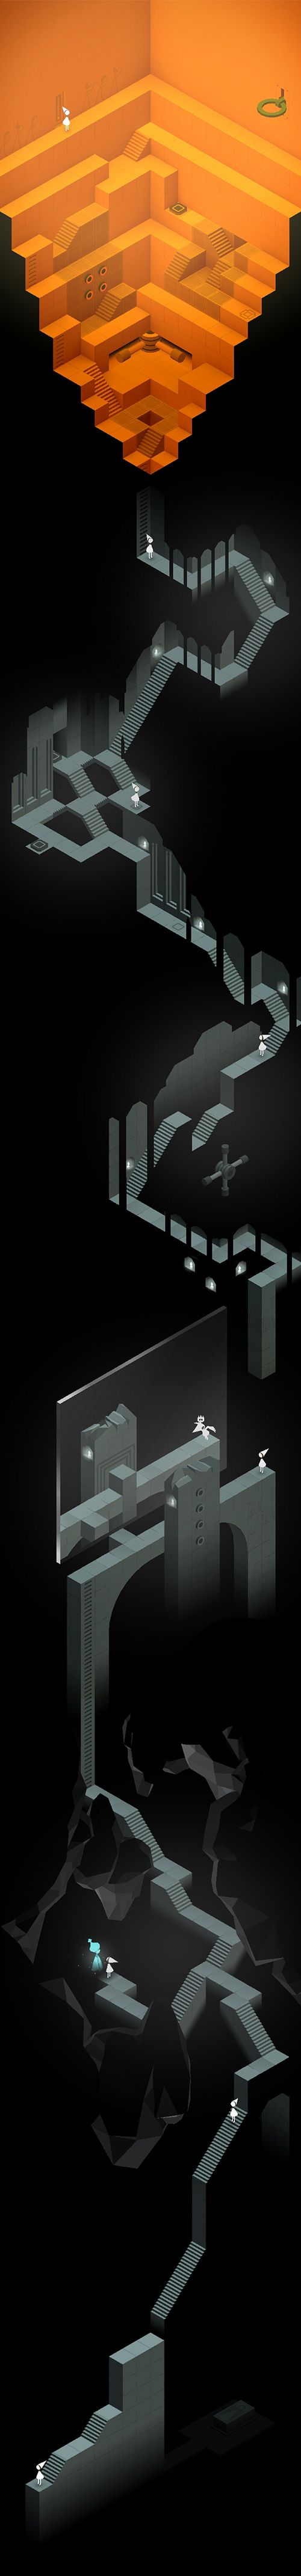 Monument Valley game - The Descent (Chapter IX), full vertical picture with Ida (the princess) and monument stairs. 피카소 일대기를 단계별로 그릴수 있는 구조